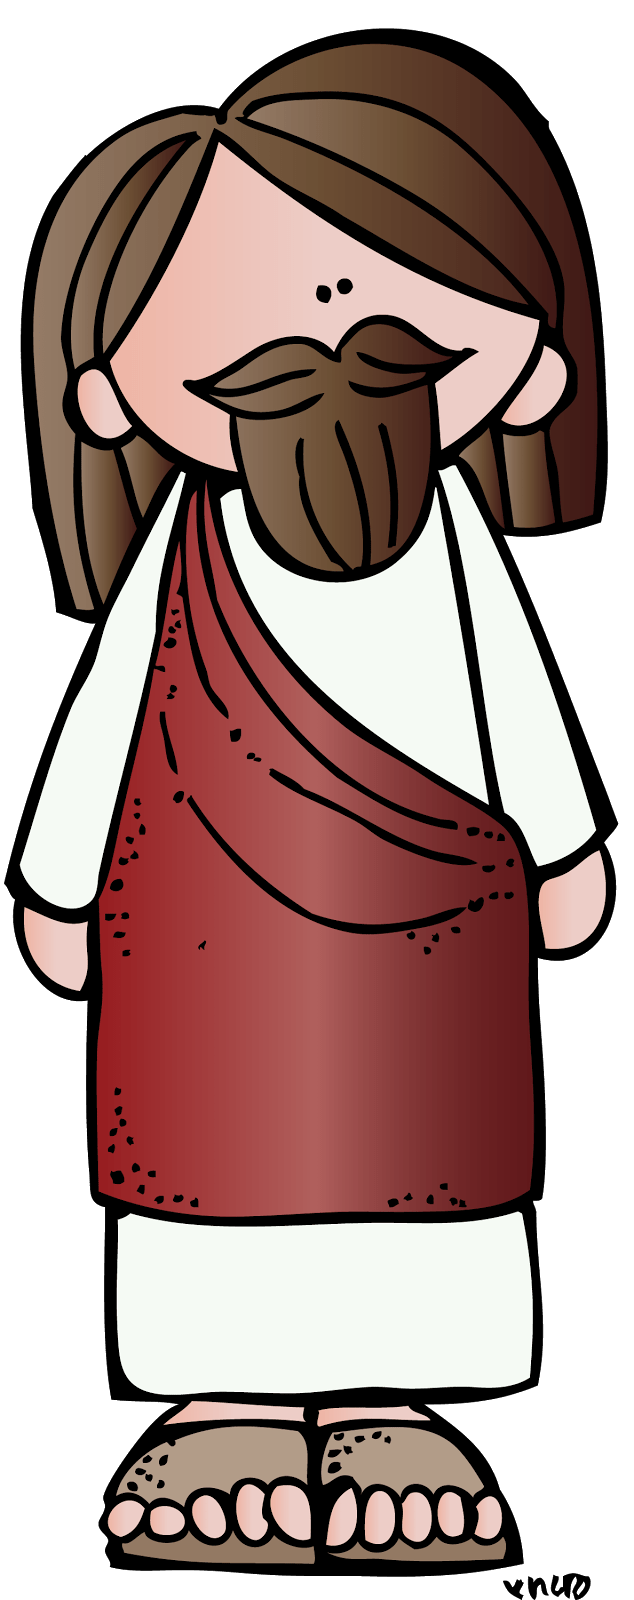 hight resolution of melonheadz lds illustrating christ heaven clipart died jesus